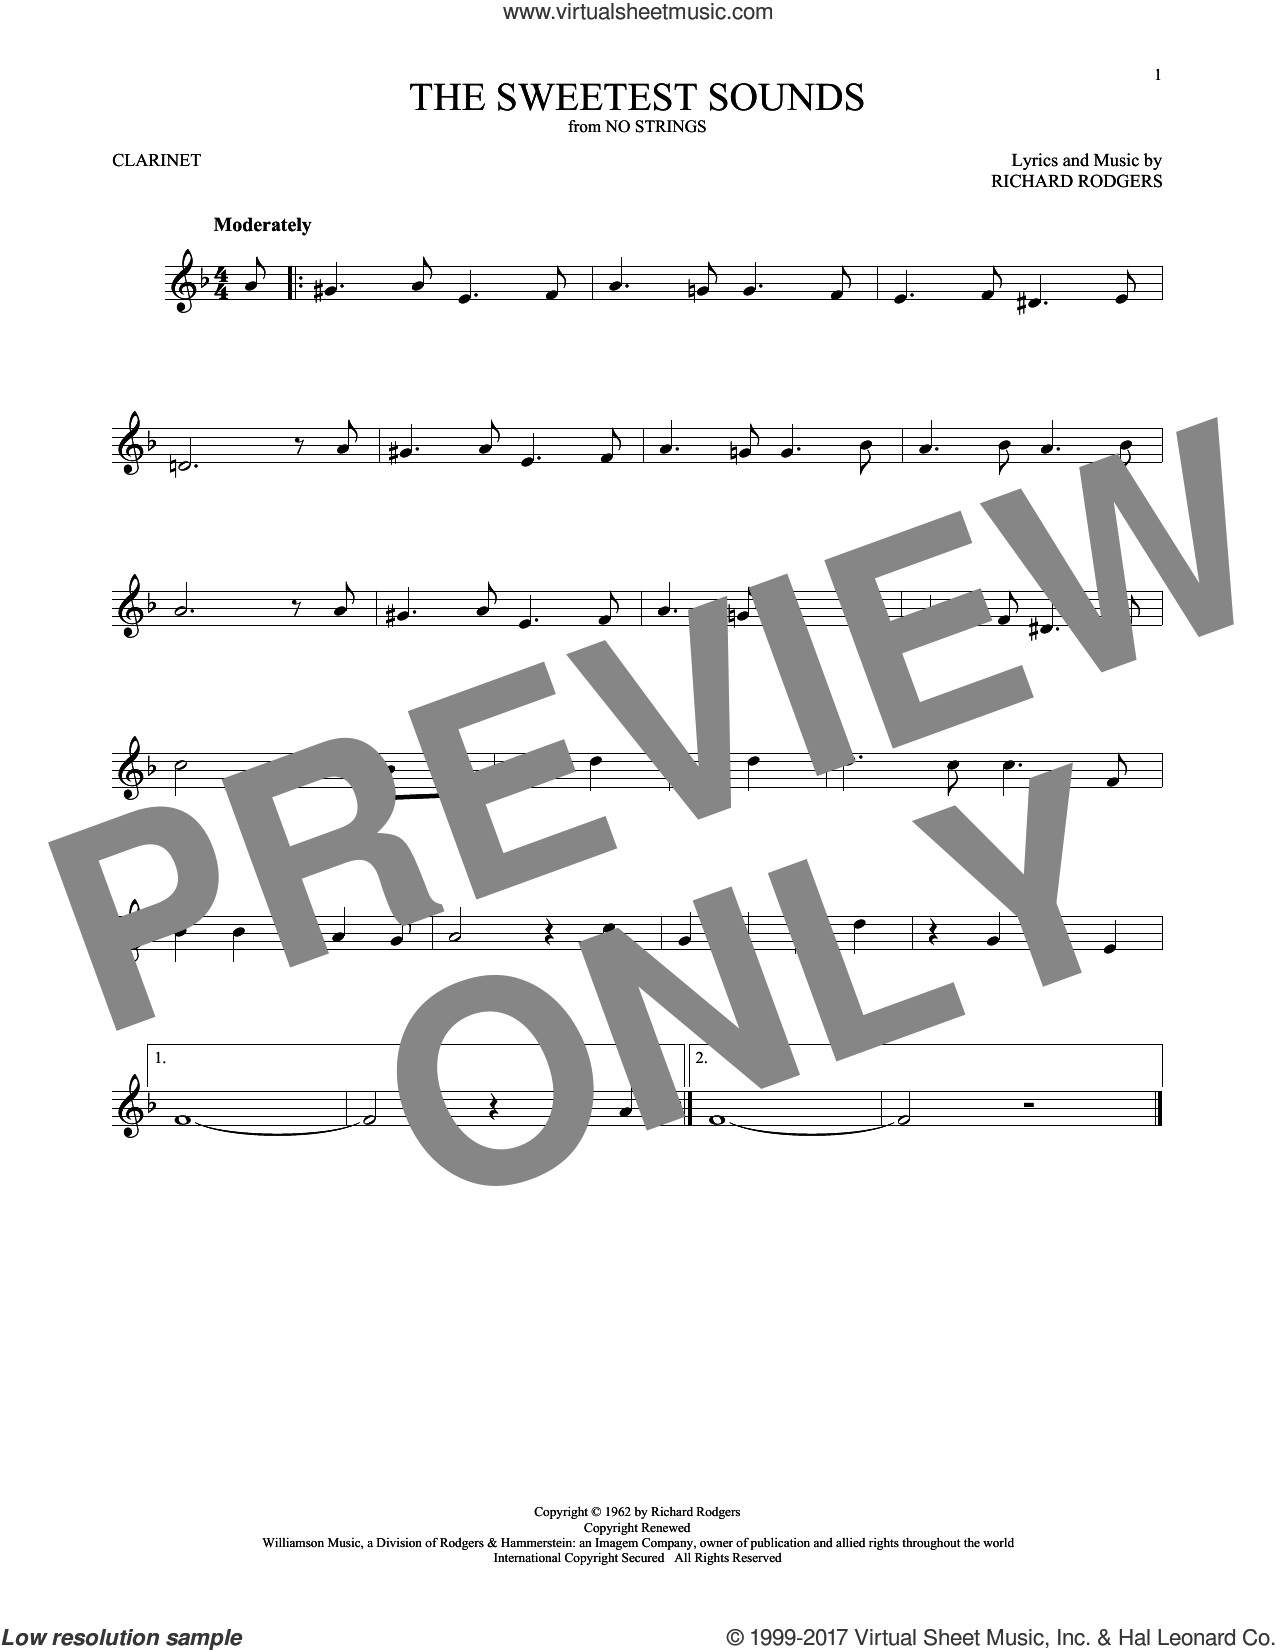 The Sweetest Sounds sheet music for clarinet solo by Richard Rodgers, intermediate skill level